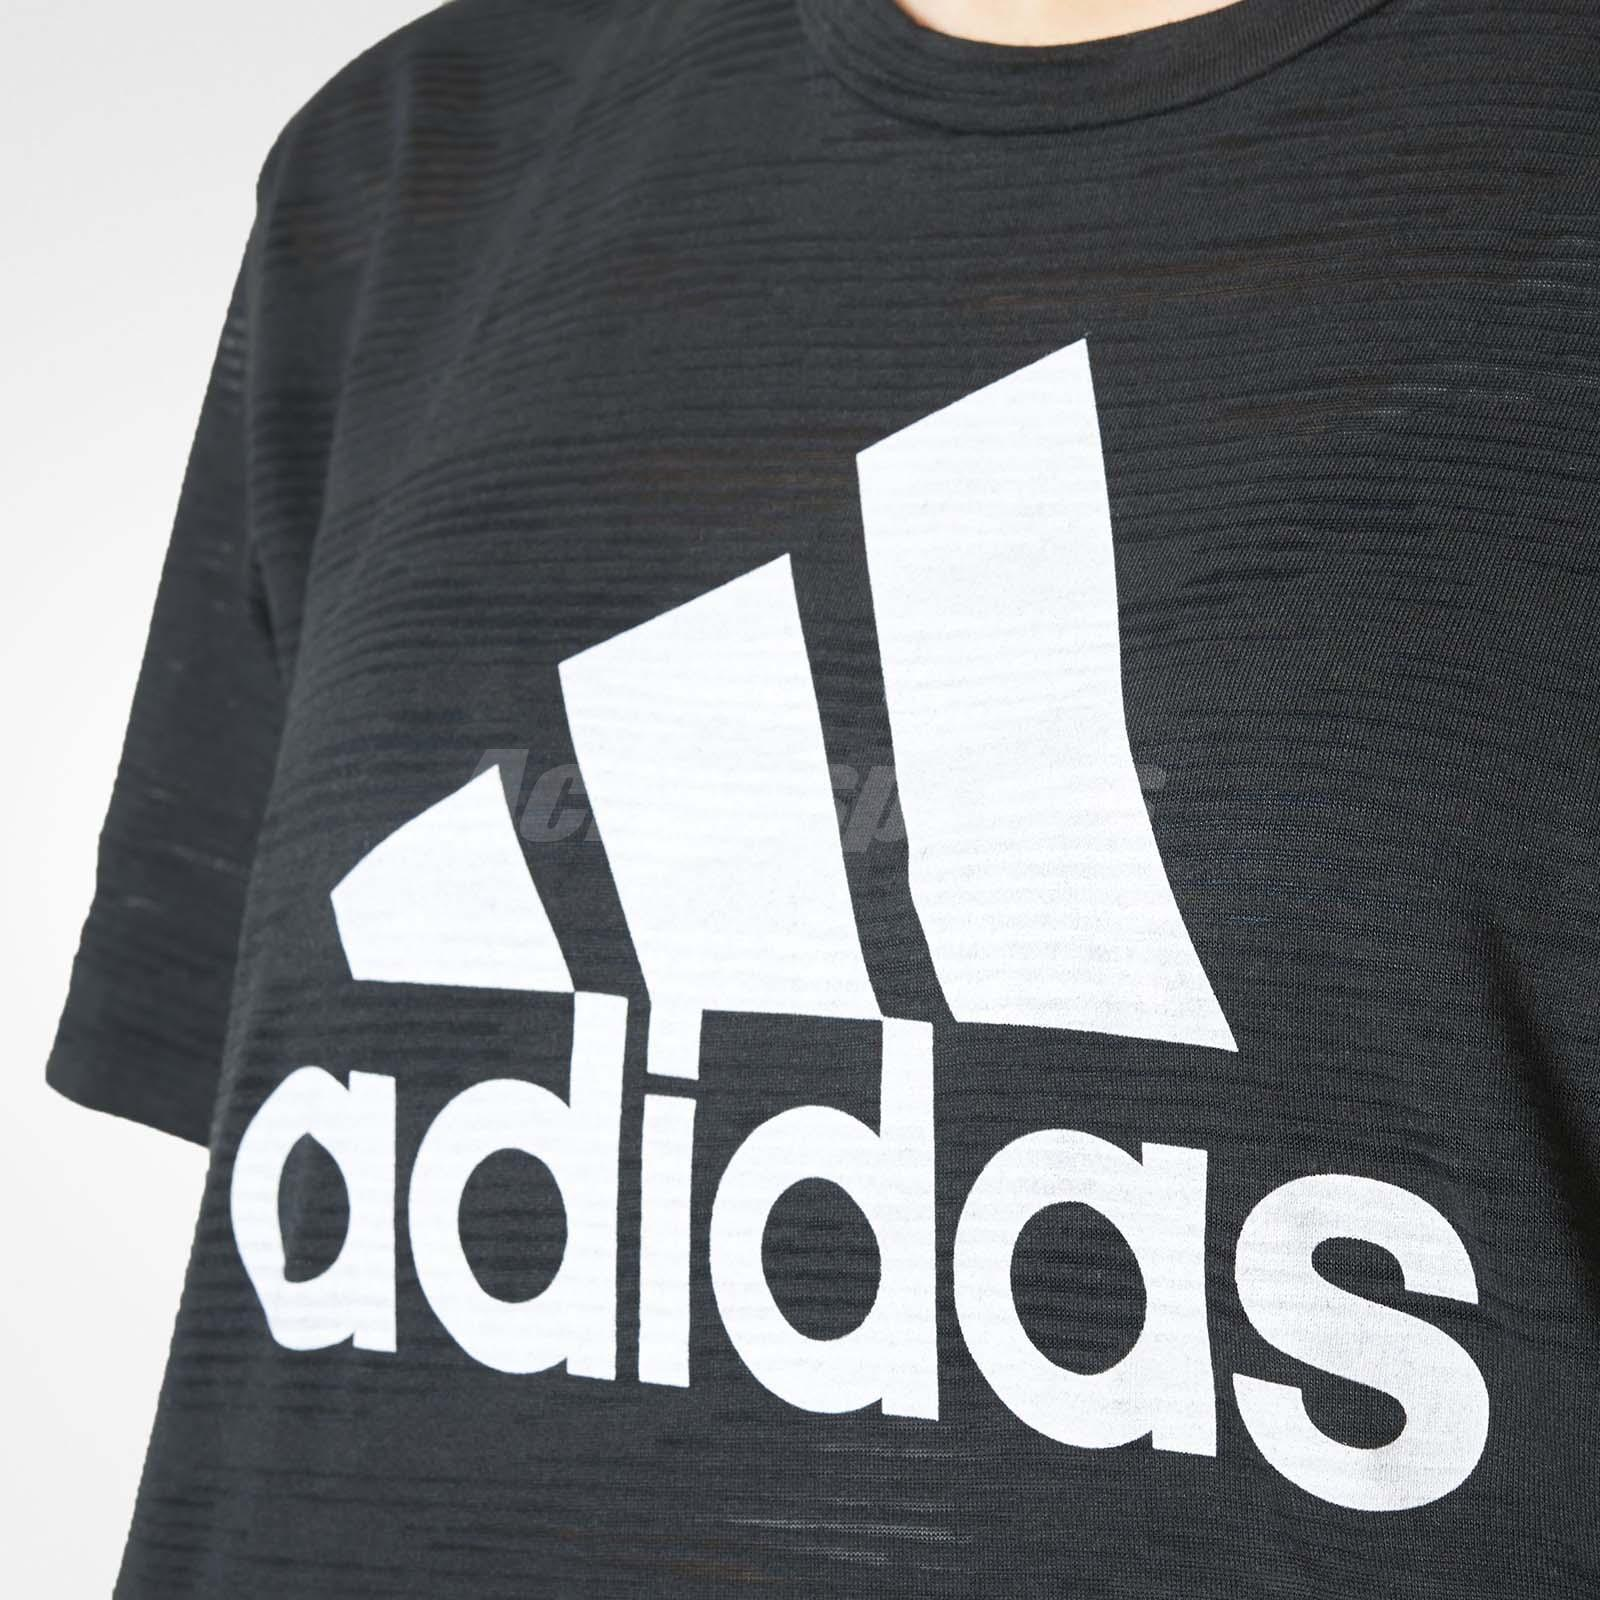 b2428e8deab adidas Women Aeroknit Crop Top Sports Running Training Tee T-Shirt ...